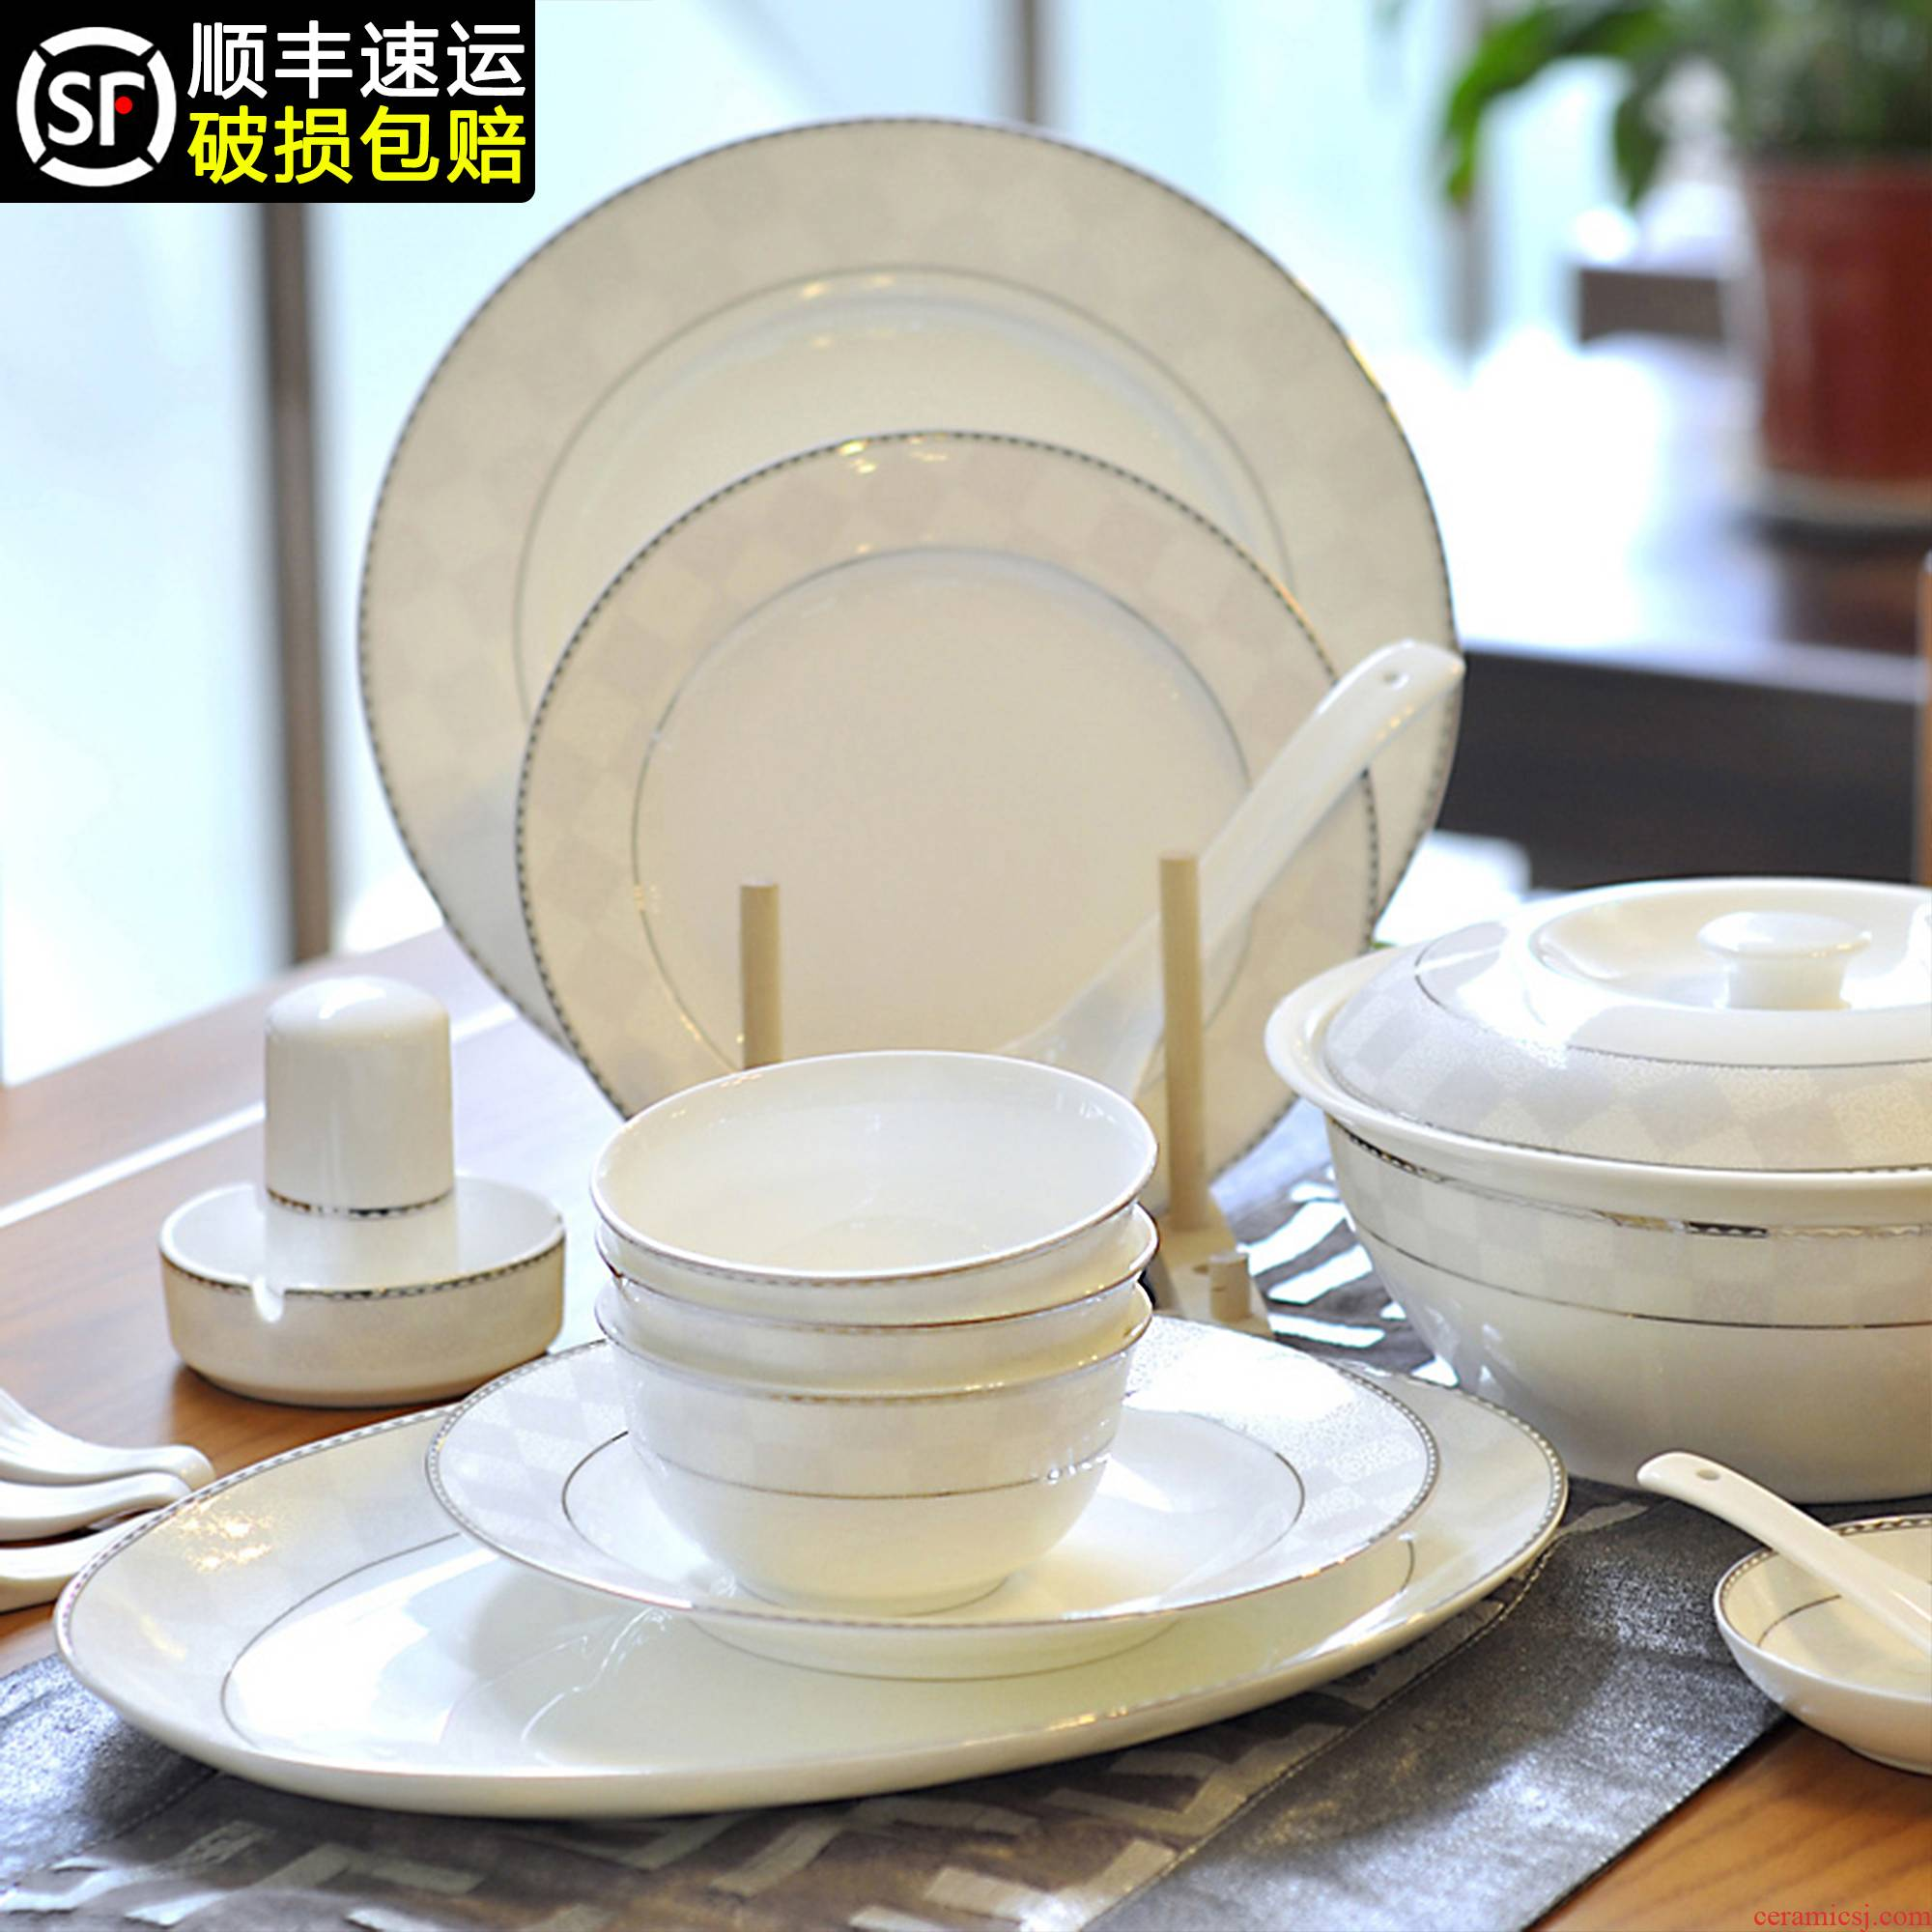 Jingdezhen ceramic tableware Chinese dishes suit household light and decoration plate chopsticks Korean high - grade ceramics from the high level of appearance